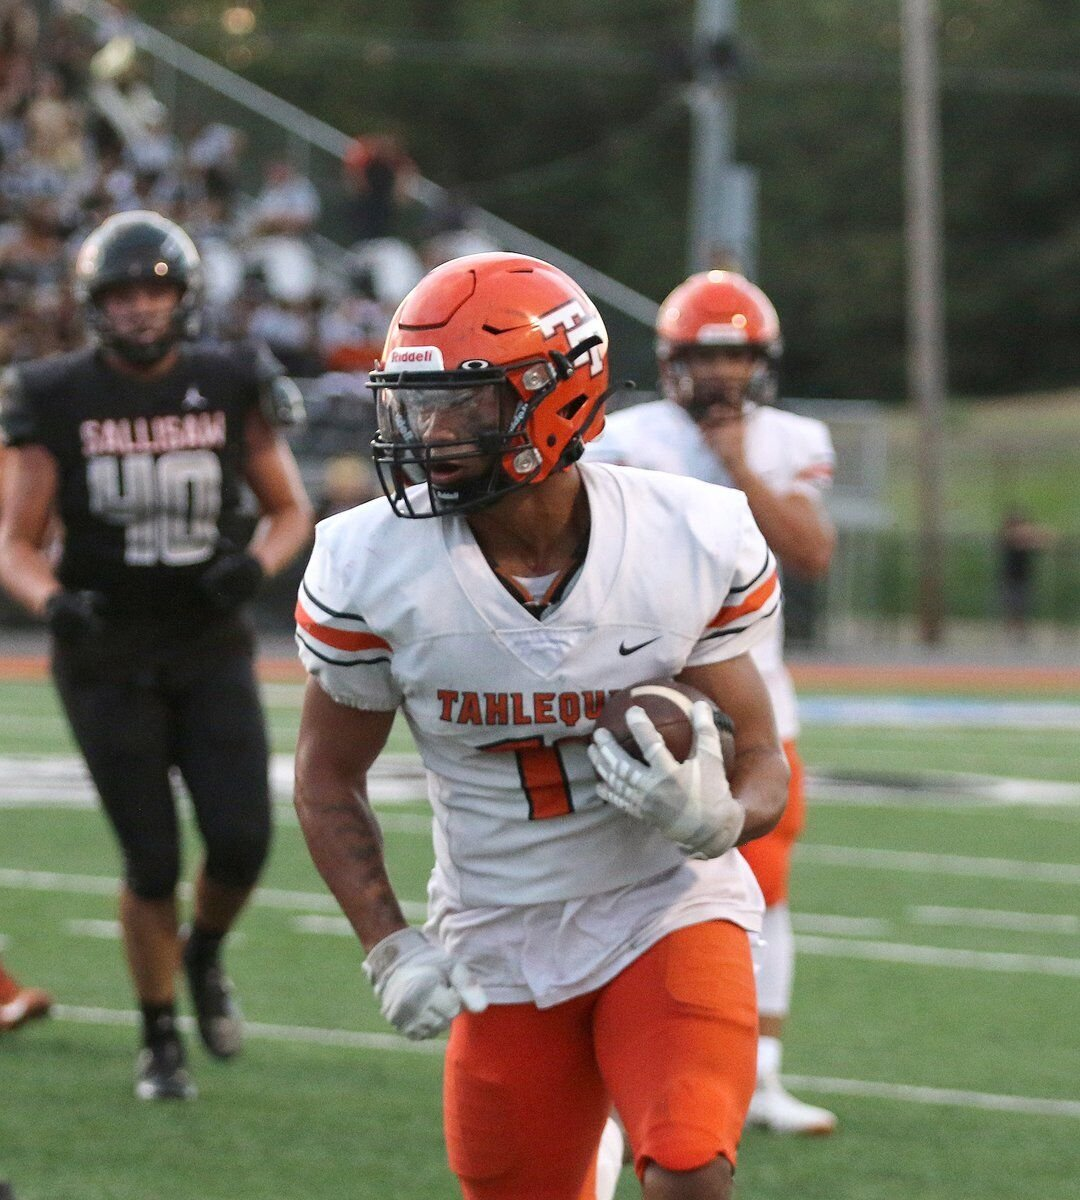 BACK ON TOP: Tigers close non-district play with 42-13 rout of Sallisaw